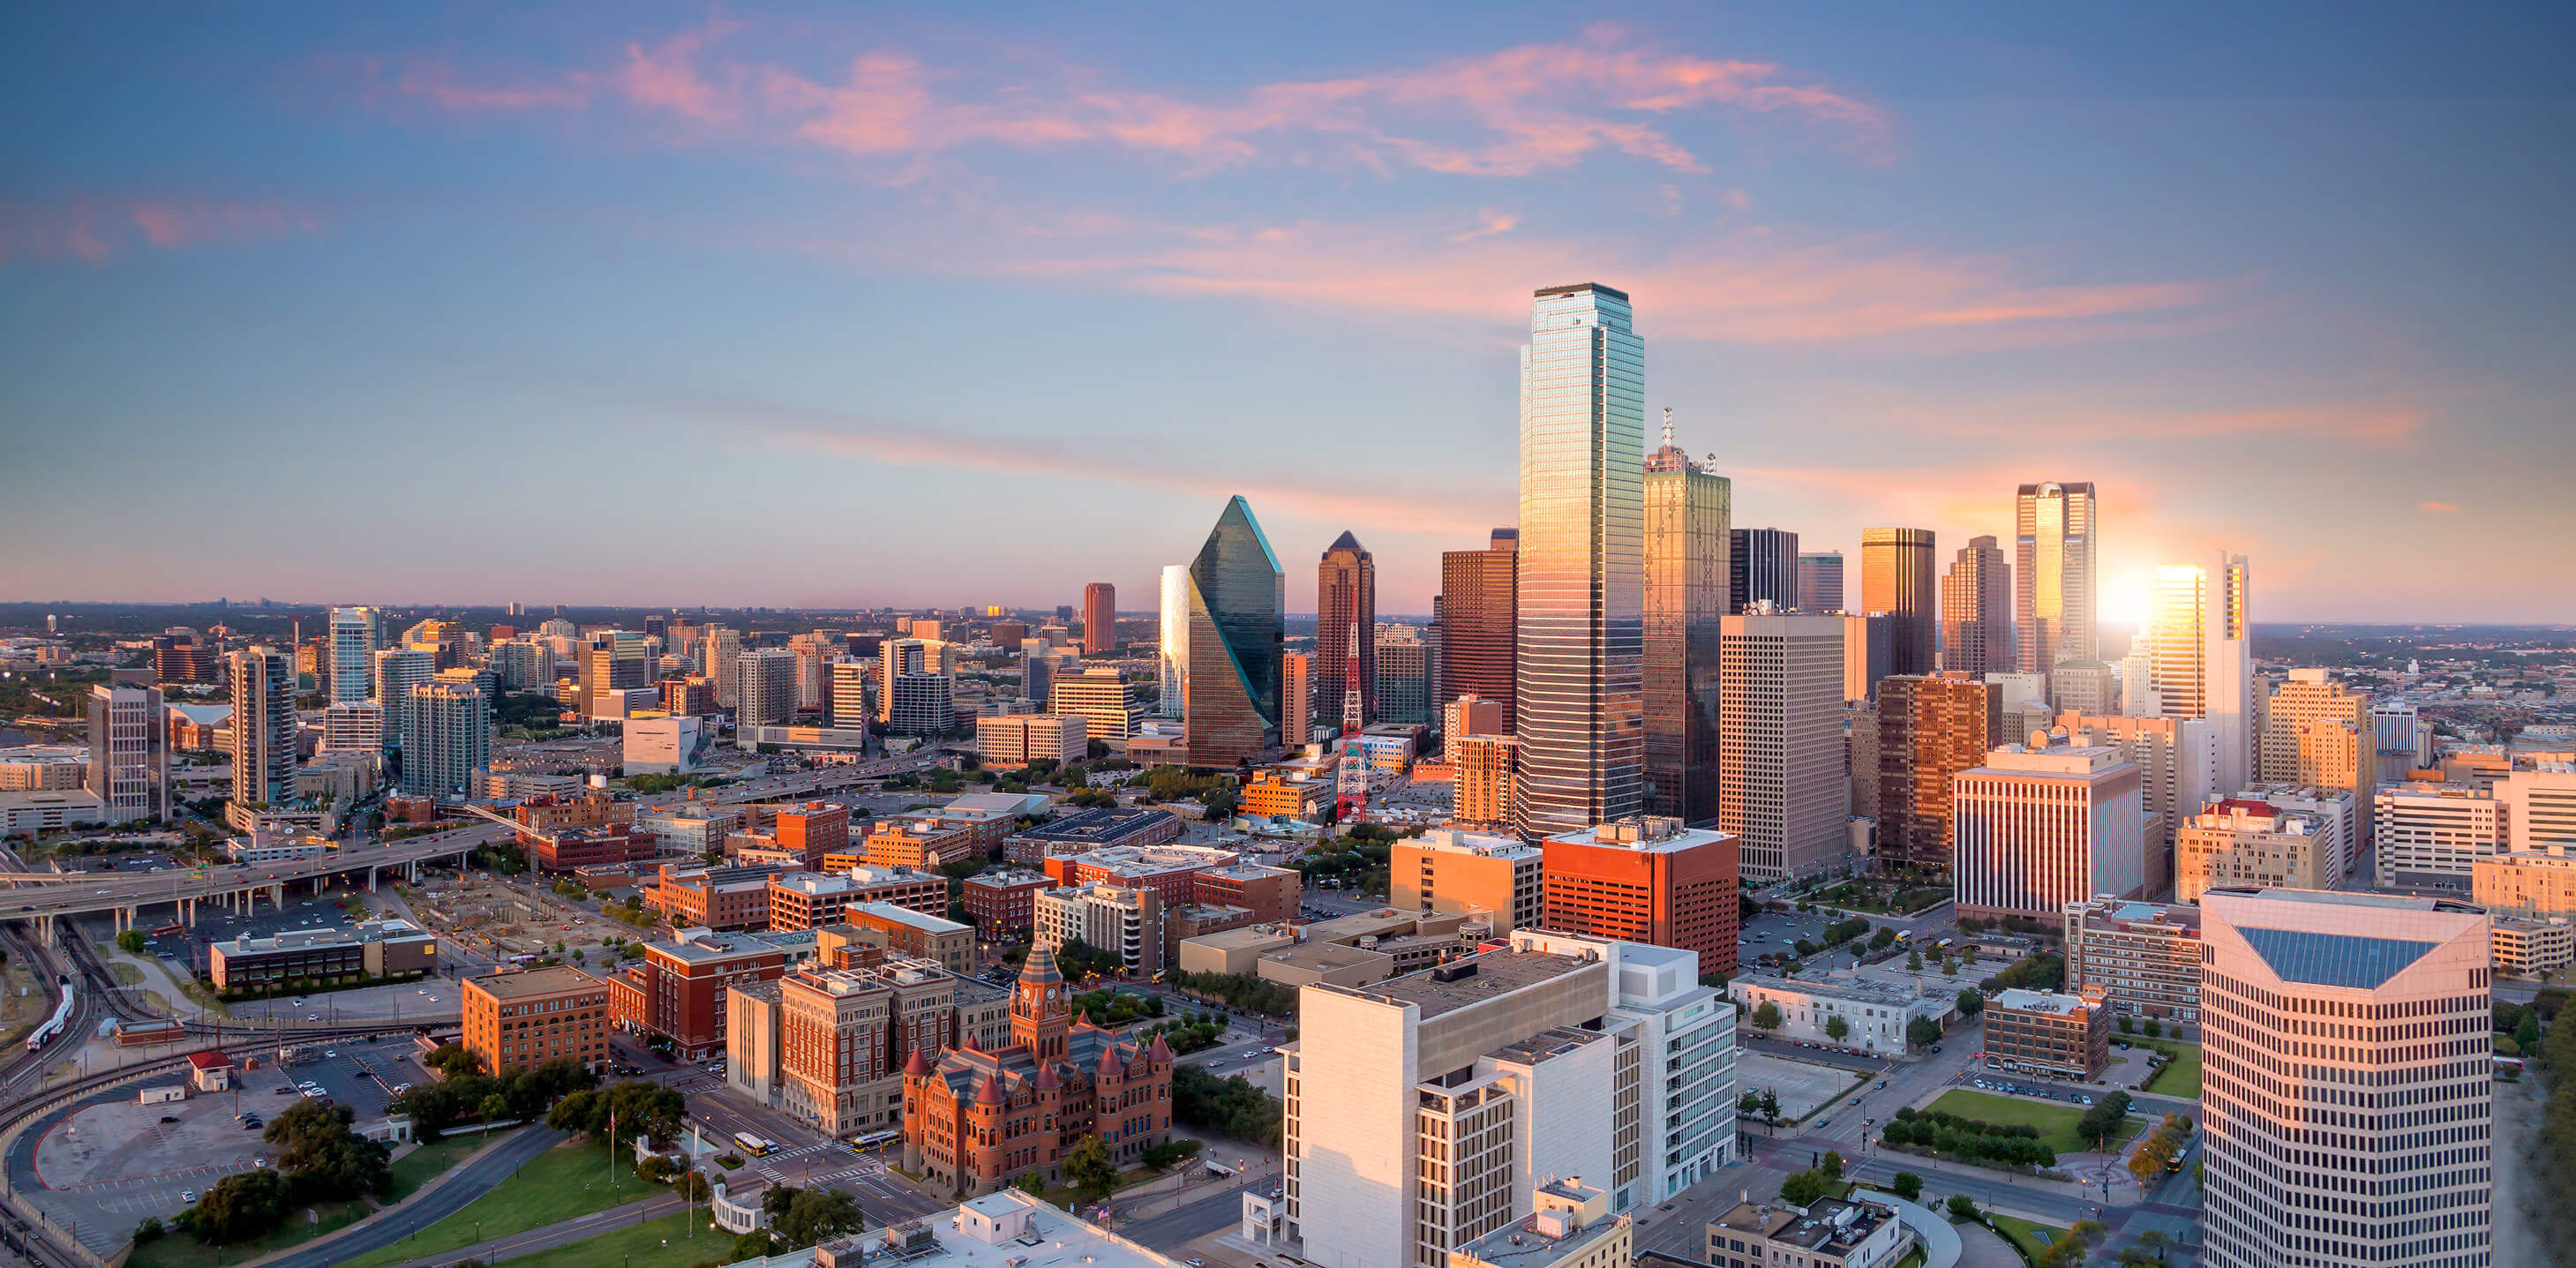 Dallas real estate has seen a massive growth in home sale prices over the past decade. How long will this continue?